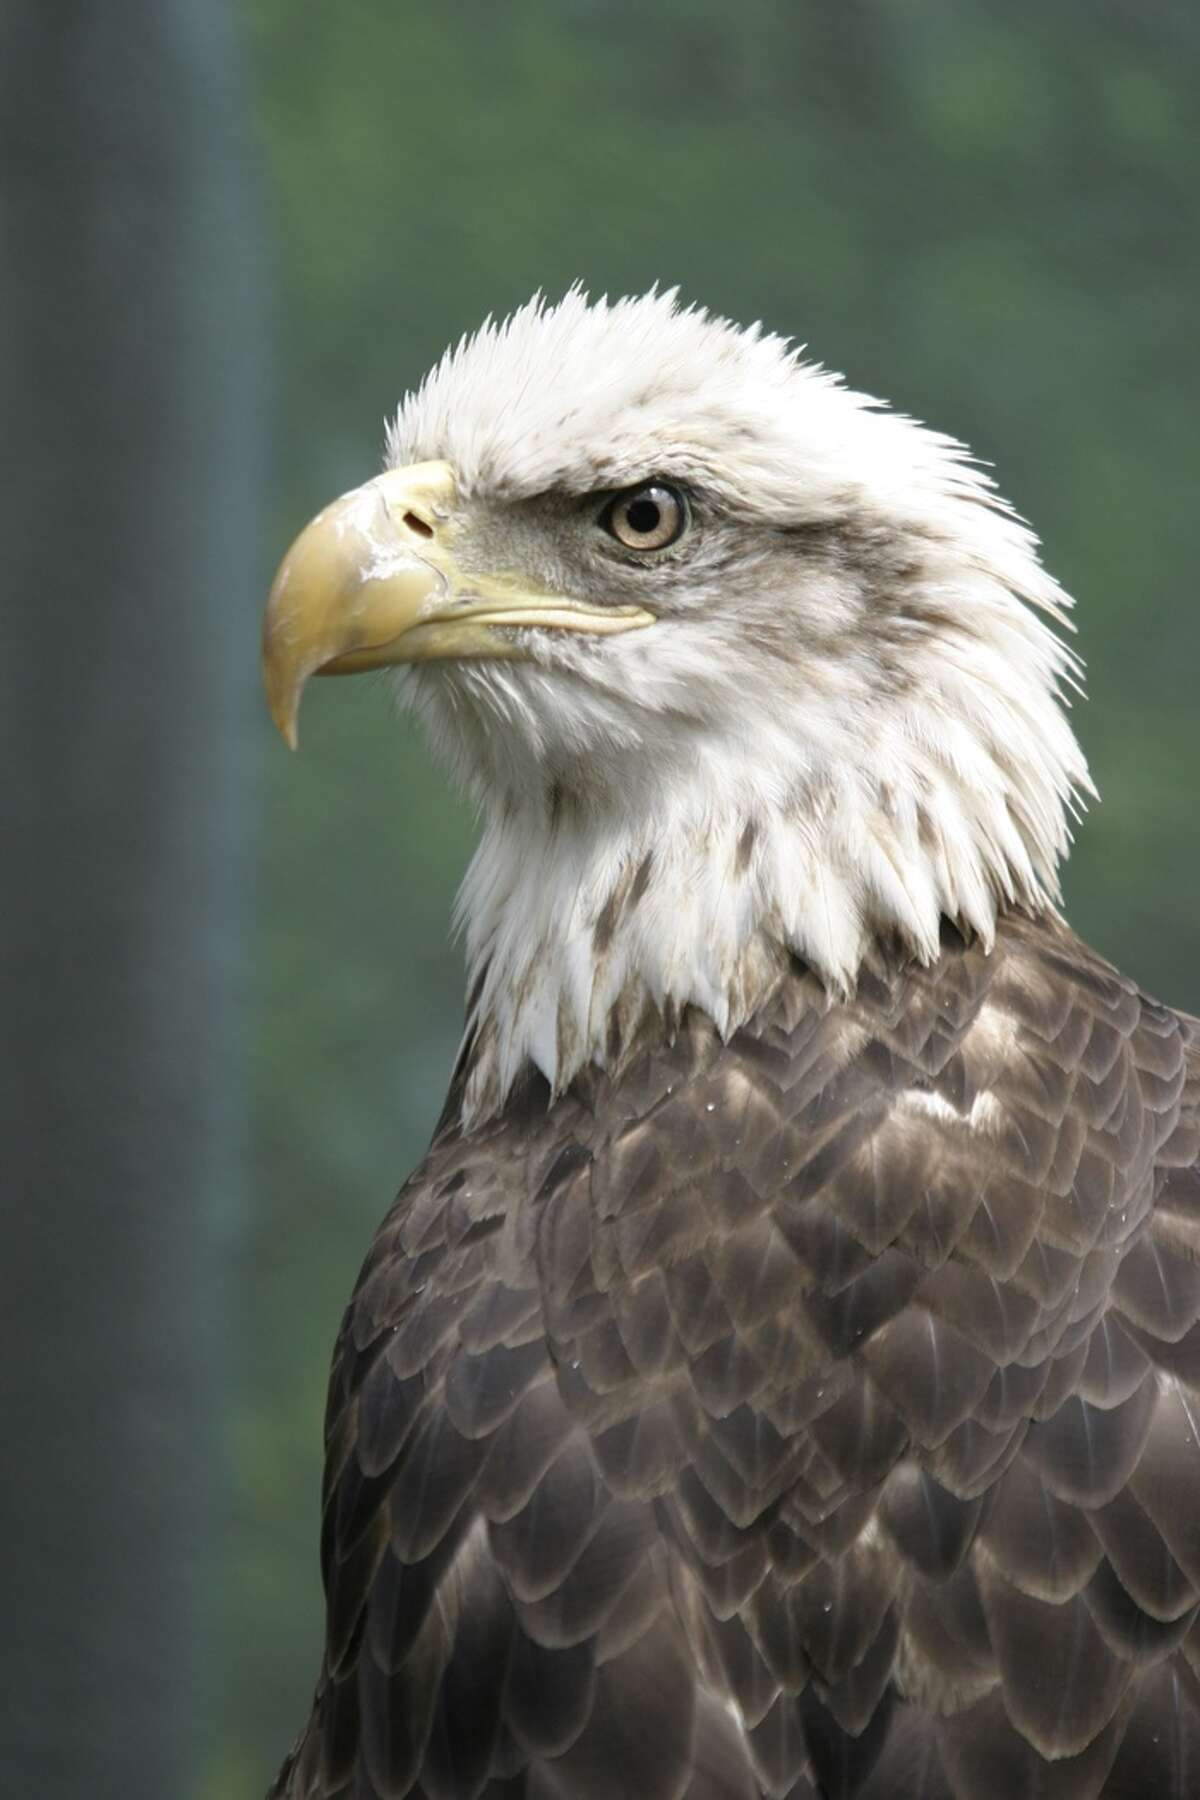 Thanks to the Endangered Species Act, the Southern Bald Eagle, once close to extinction, now thrives in the Lone Star State.